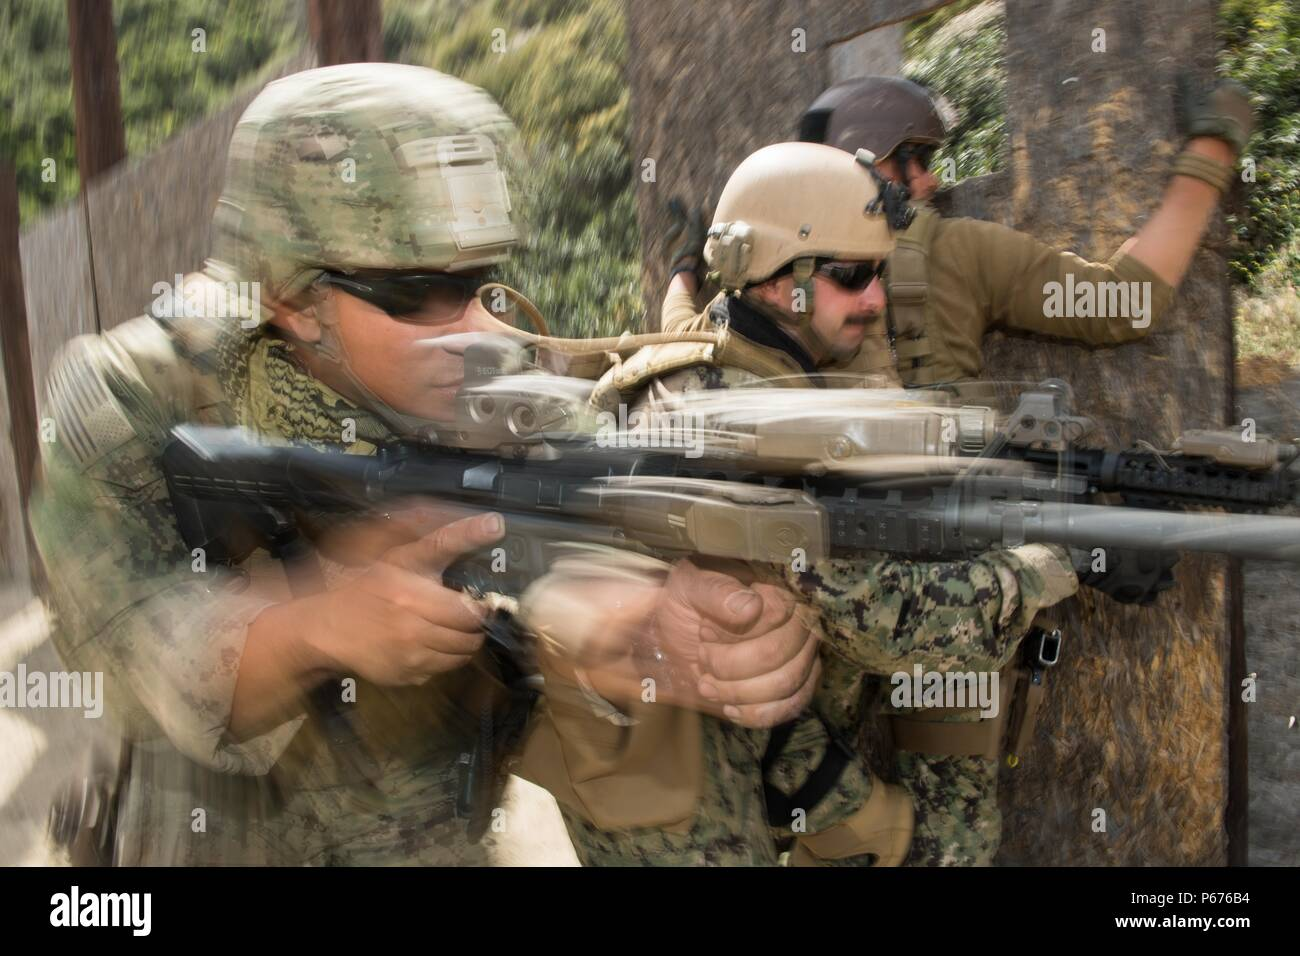 Mass Communication Specialist 2nd Class Eric Chan, assigned to Amphibious Construction Battalion 1 (left) and Mass Communication Specialist 3rd Class Eric Coffer, practice hallway clearing at 2016 Summer Quick Shot Exercise, in Azusa, California, May 20, 2016. Quick shot is a biannual Fleet Combat Camera Pacific exercise that provides live-fire and scenario based training to combine-joint combat camera assets. (U.S. Navy Combat Camera photo by Chief Mass Communication Specialist Greg Badger/Released) - Stock Image